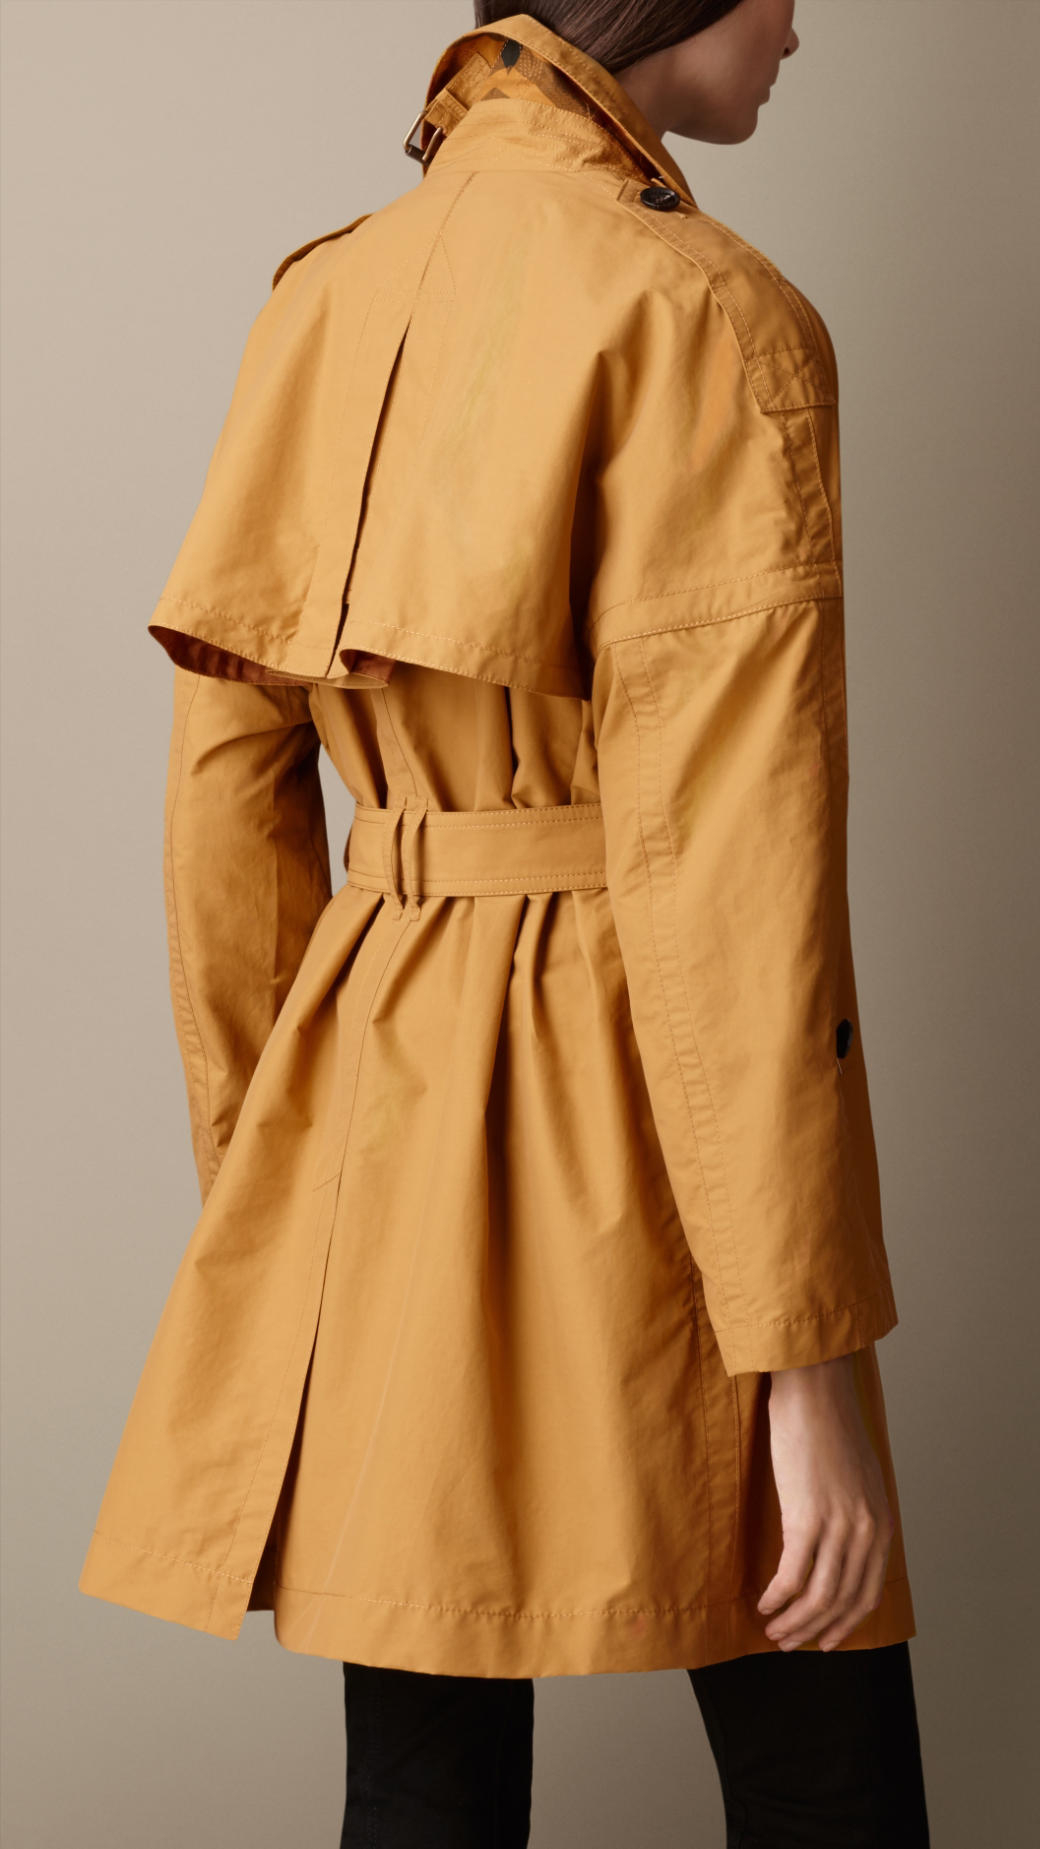 Lyst Burberry Long Dolman Sleeve Trench Coat In Yellow